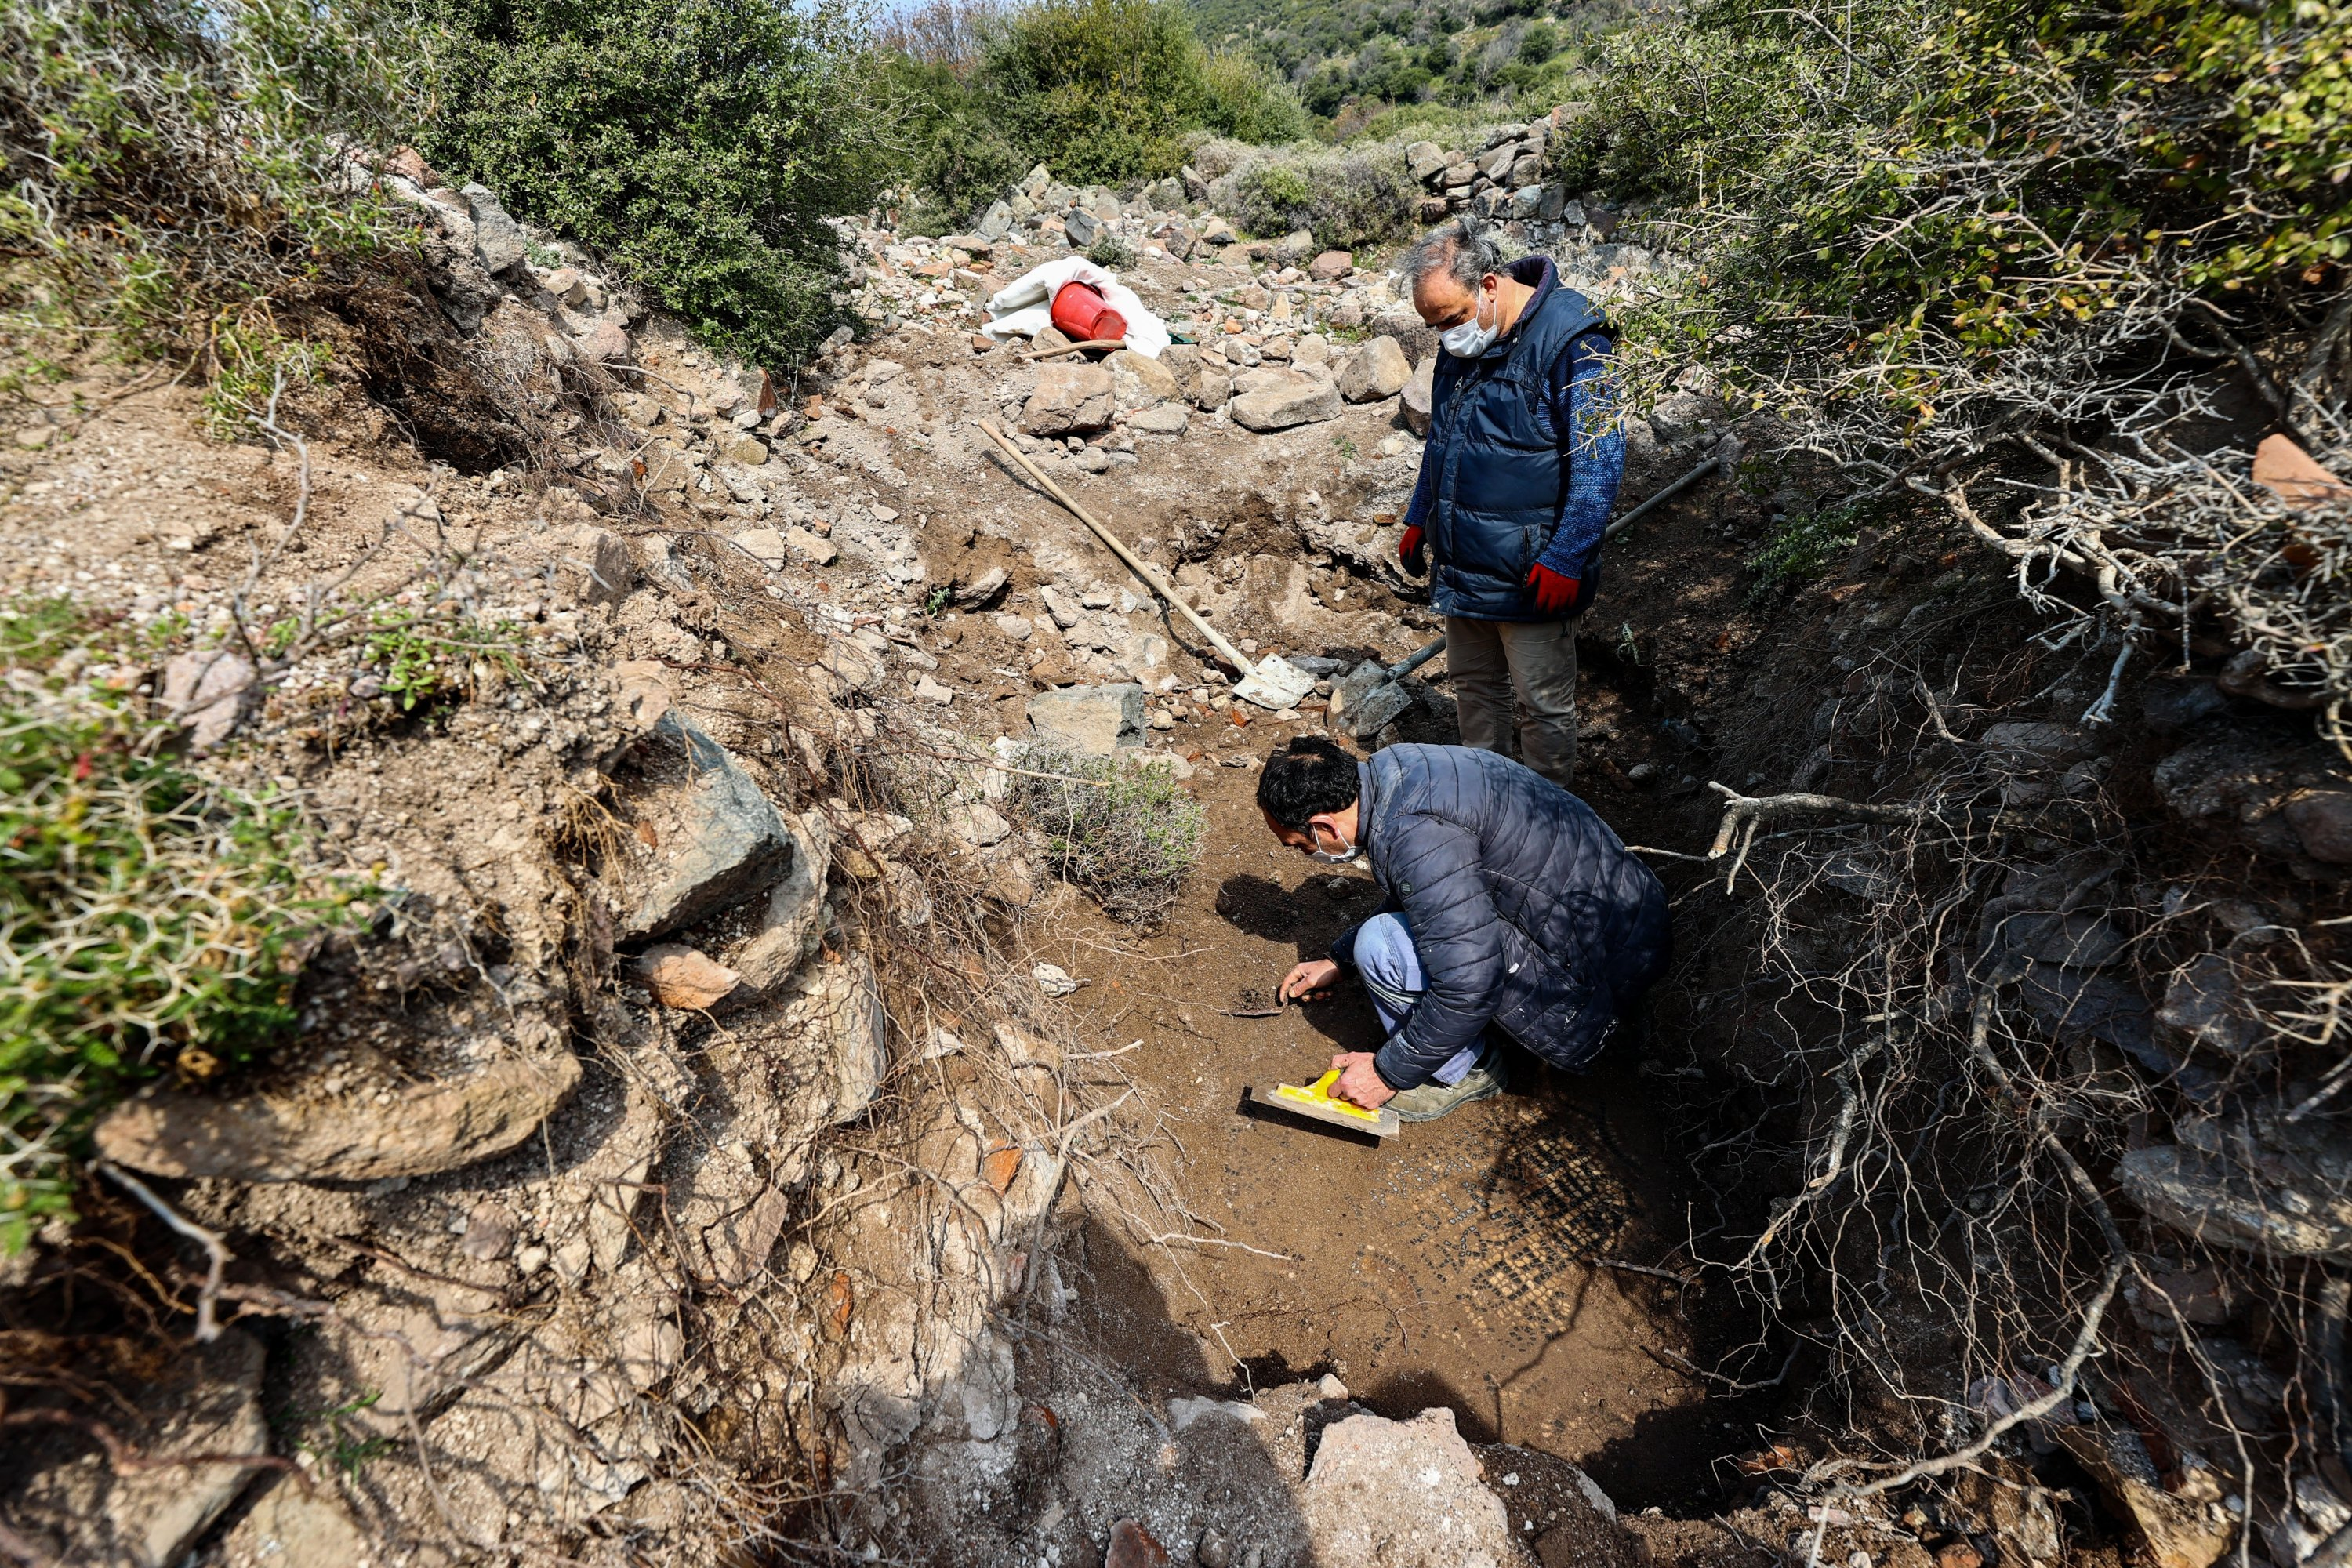 Two experts from the Izmir Archeology Museum investigate the area where the mosaic and monastery unearthed, Izmir, western Turkey, April 3, 2021. (AA Photo)